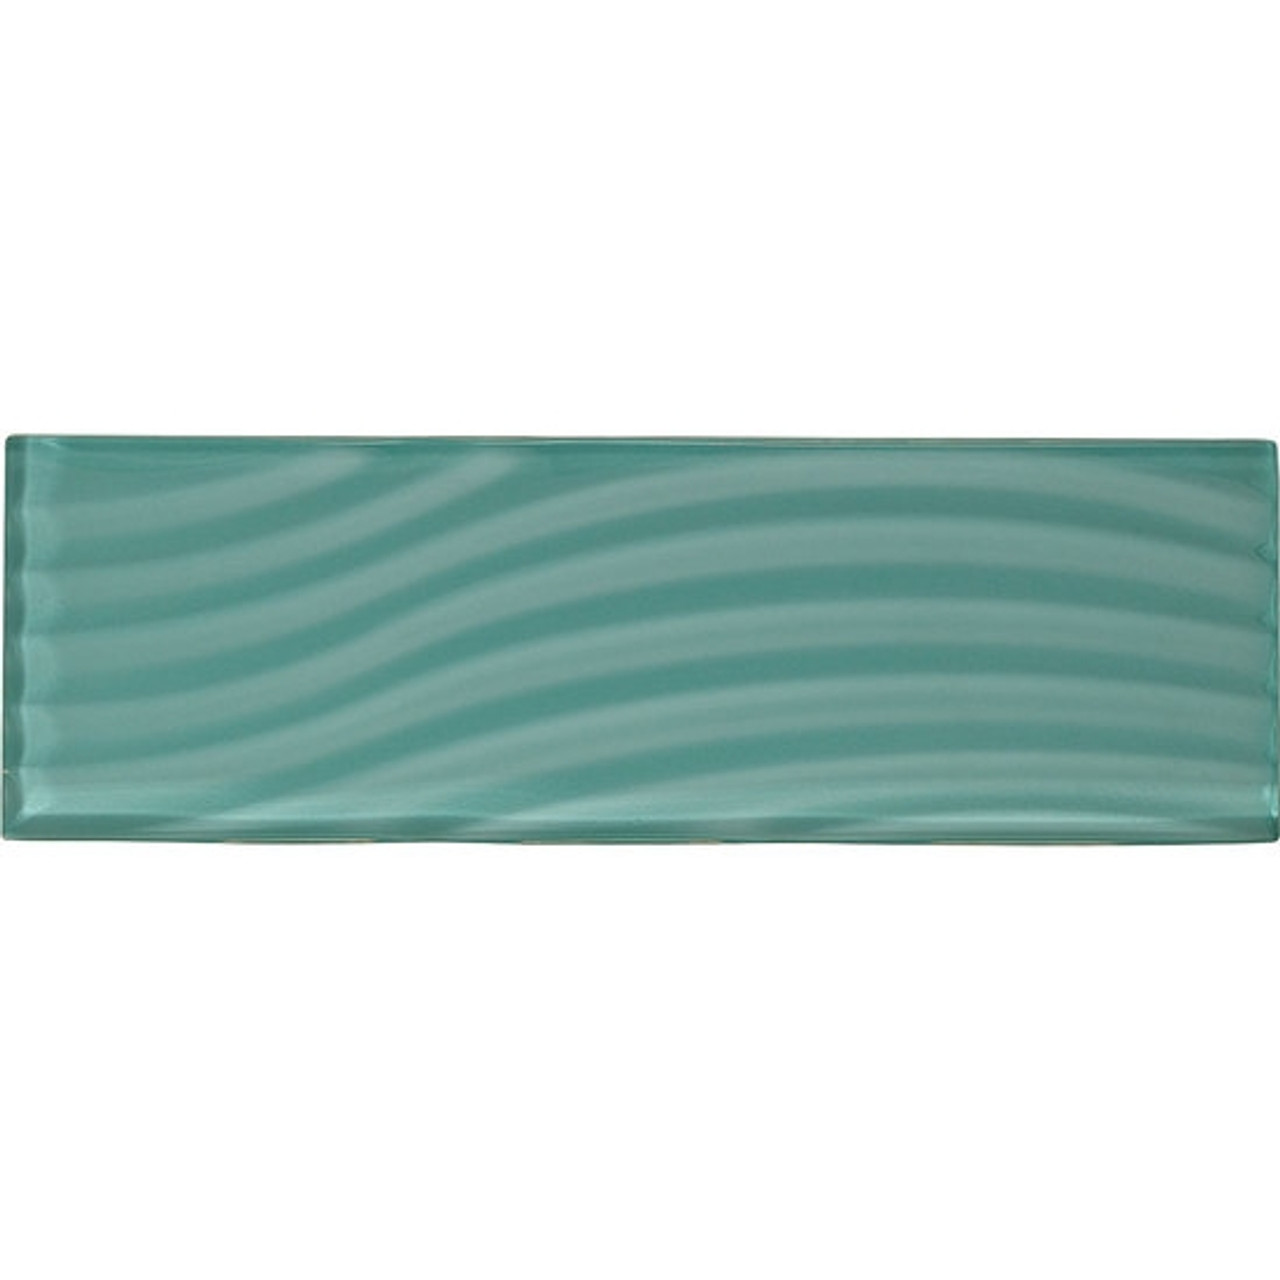 american olean color appeal entourage abstracts glass c108 fountain blue 4x12 wavy subway glass tile plank glossy